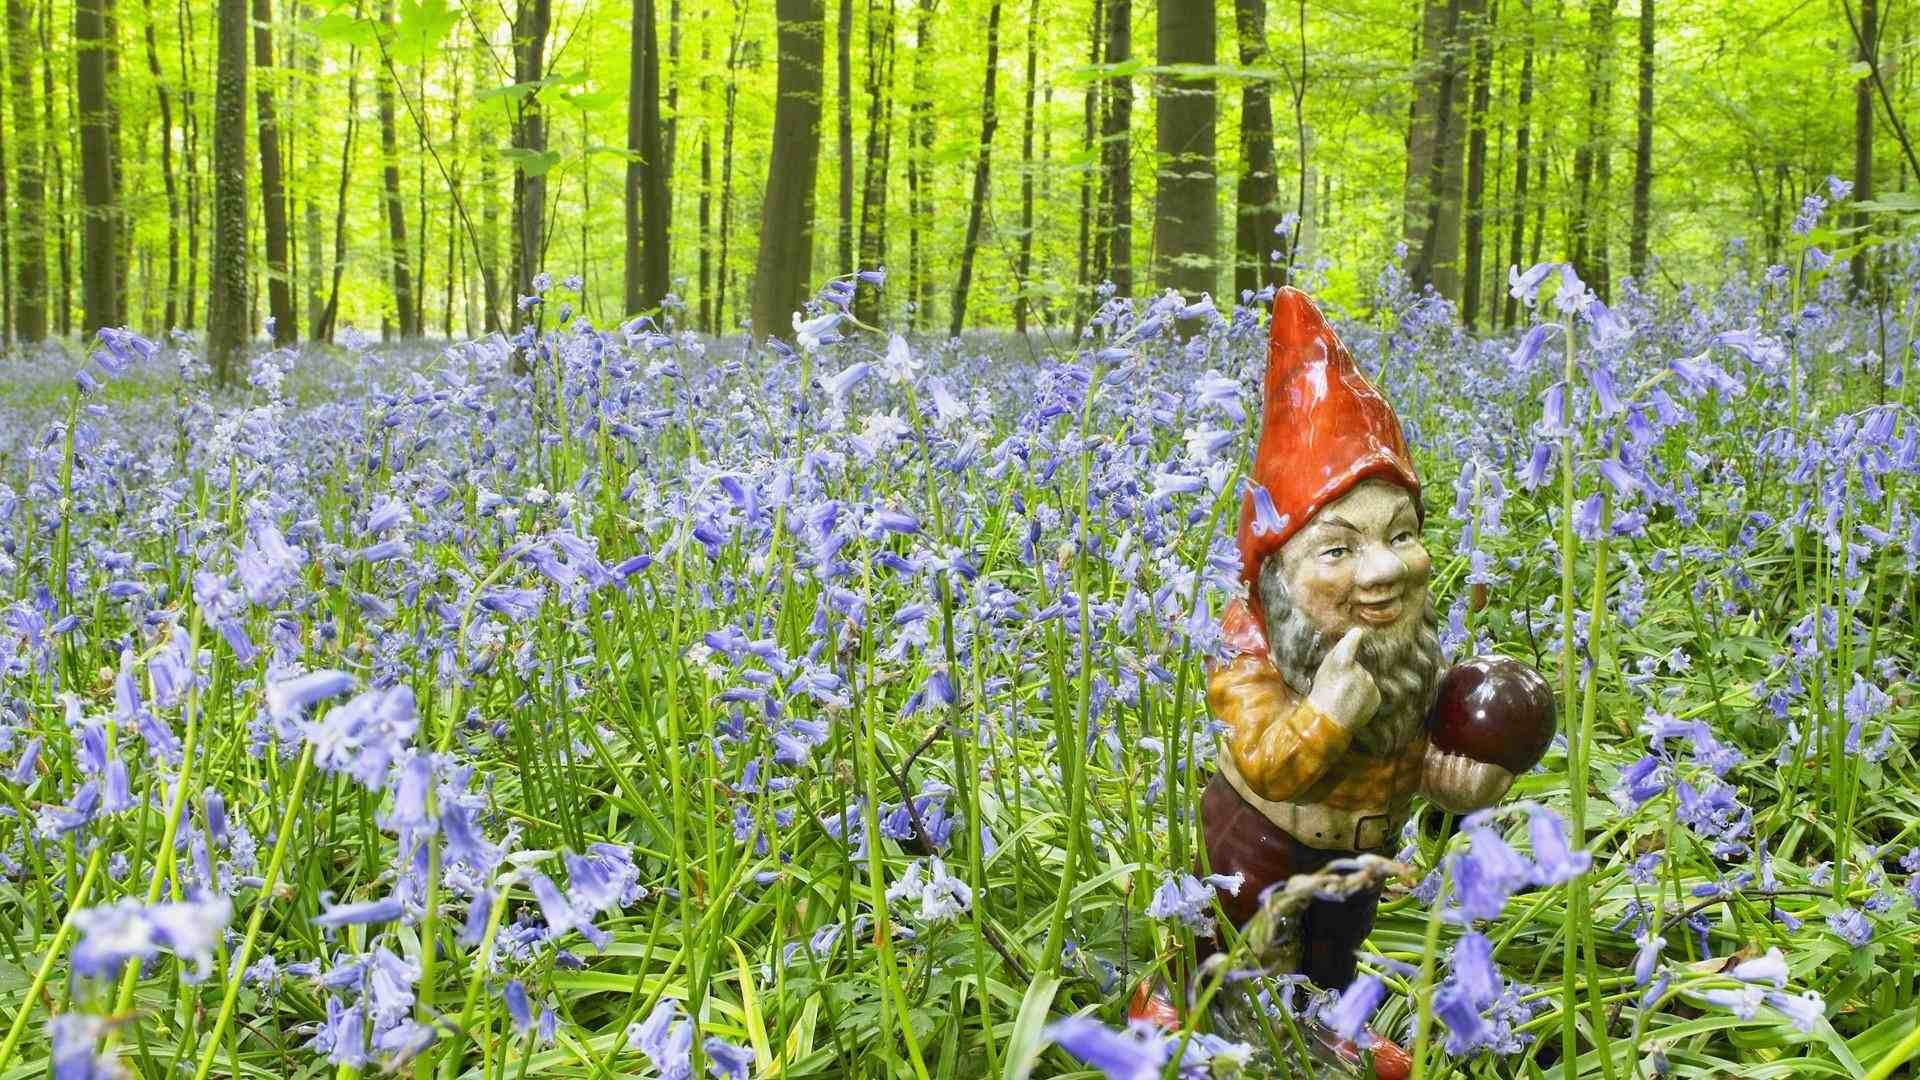 Res: 1920x1080, Ikea Reveals Heart of Darkness Within Every Garden Gnome ...